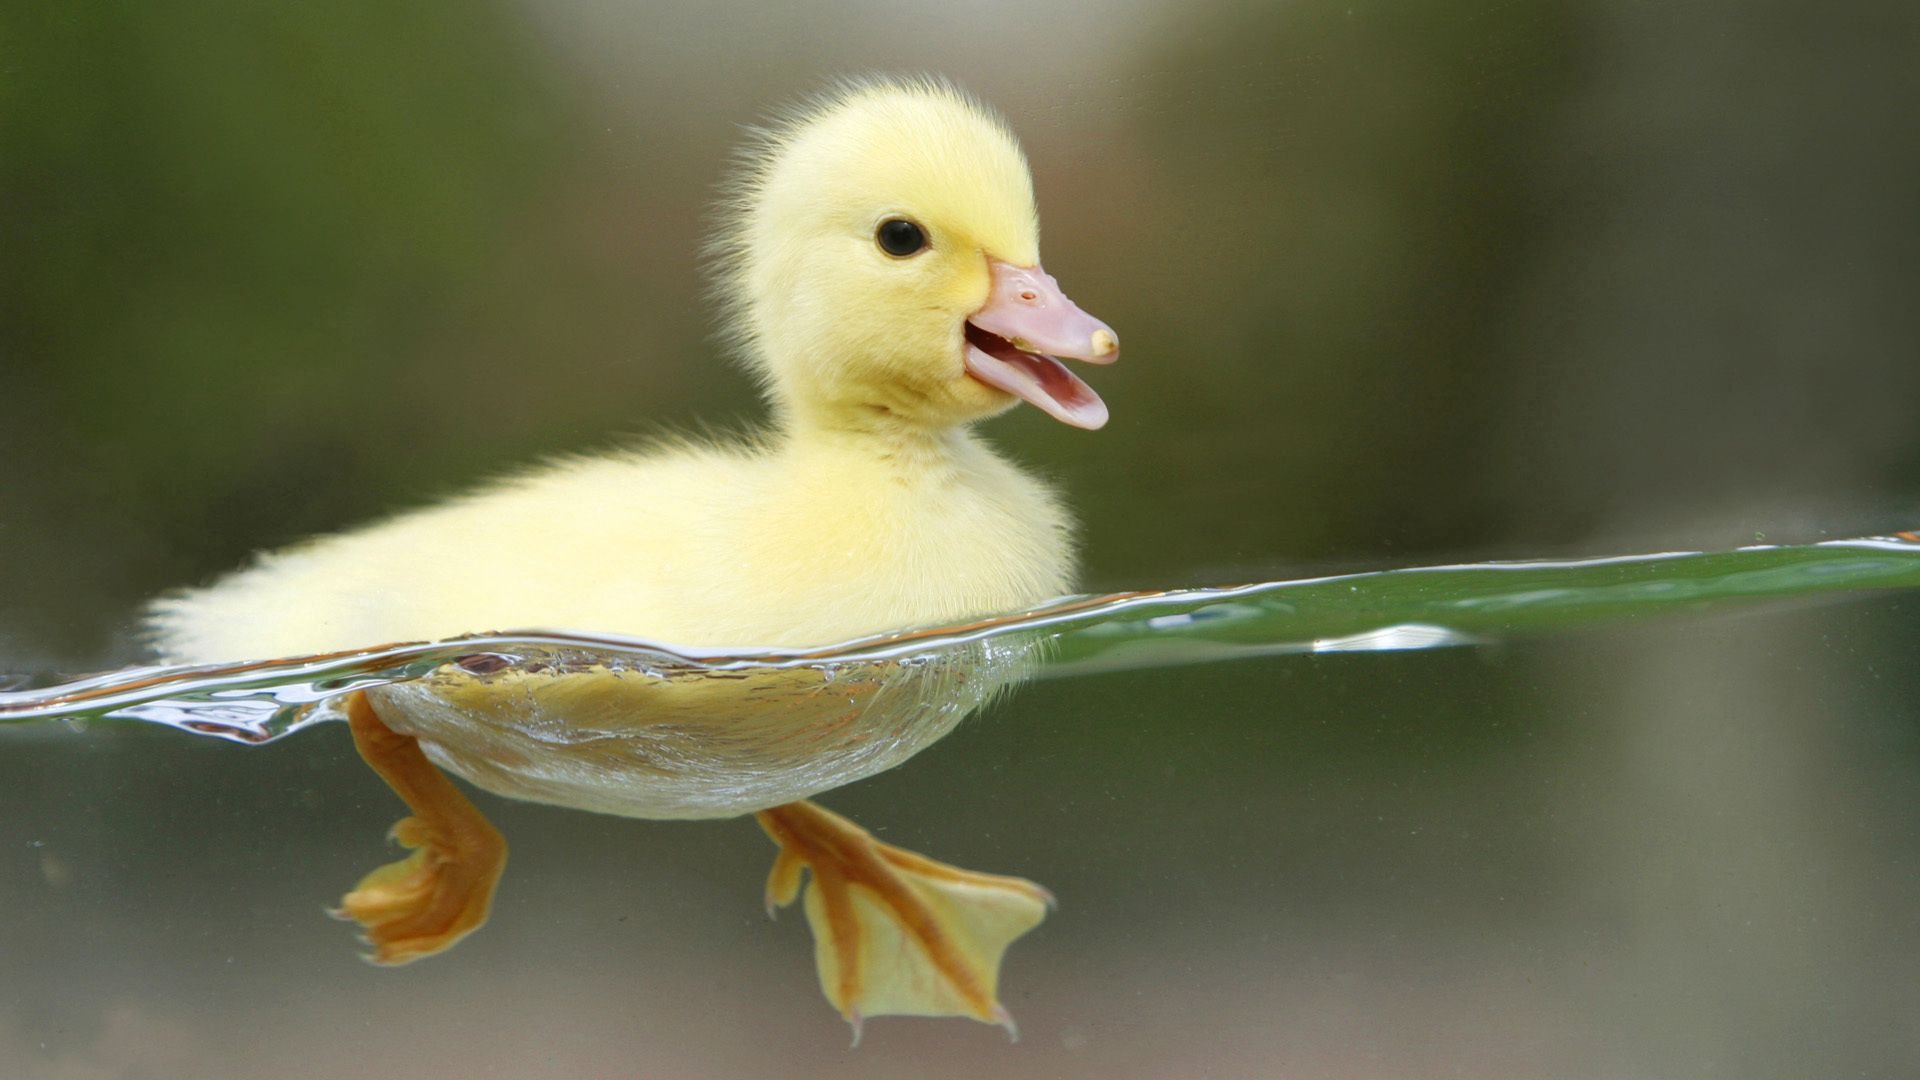 136557 download wallpaper Animals, Duckling, Bird, Water, To Swim, Swim screensavers and pictures for free